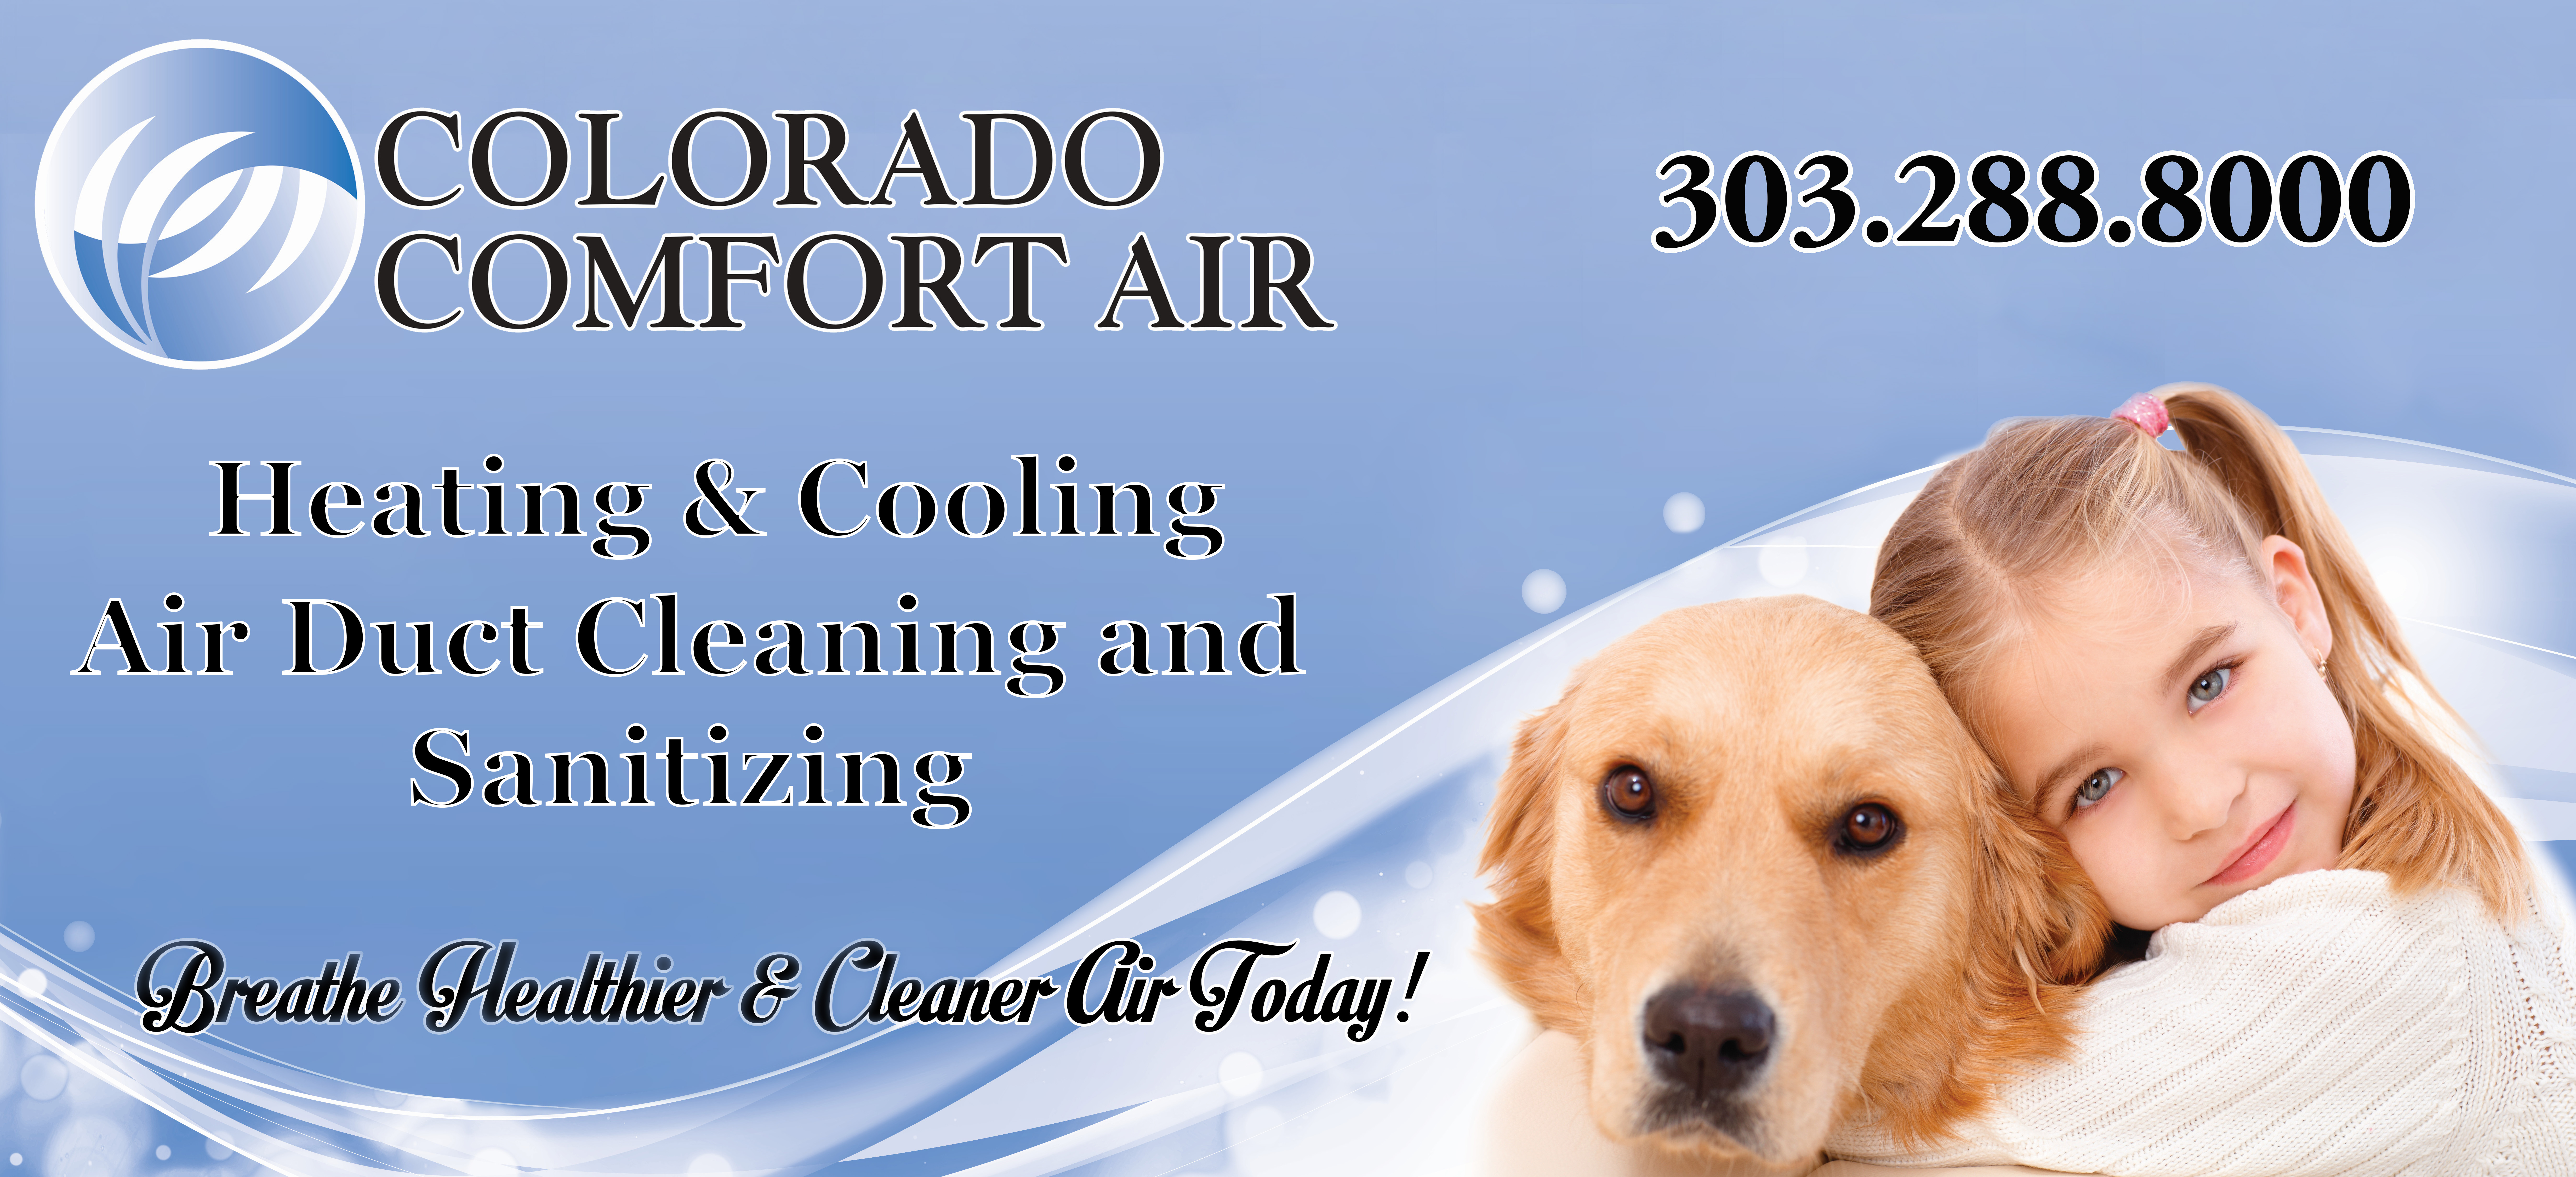 Colorado Comfort Air